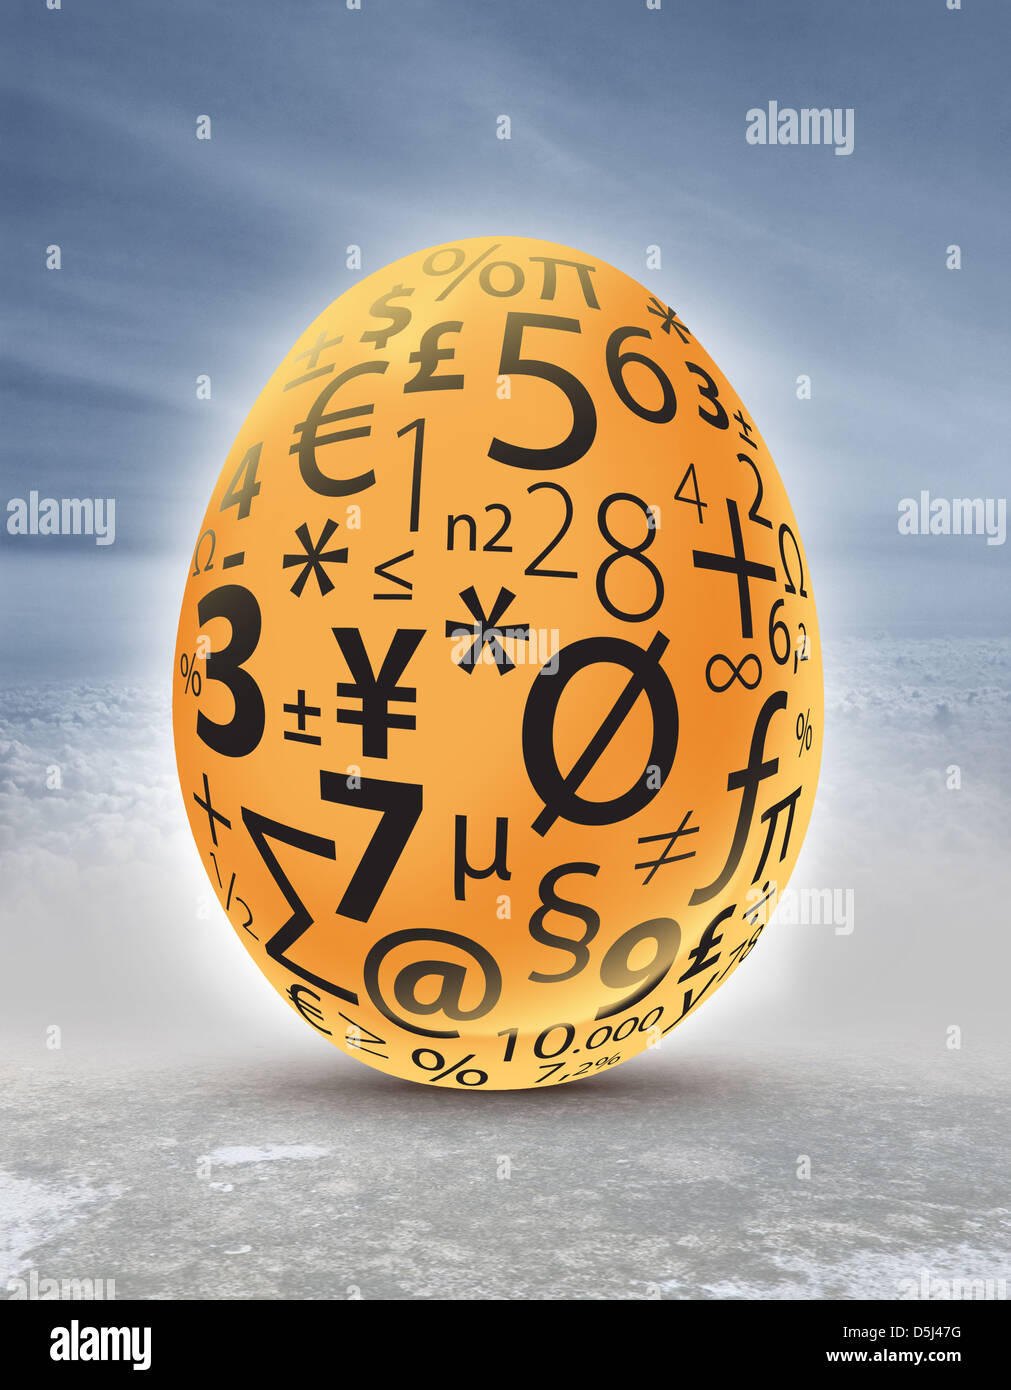 Illustrative image of golden egg with currency and mathematical symbols representing investment and profit - Stock Image